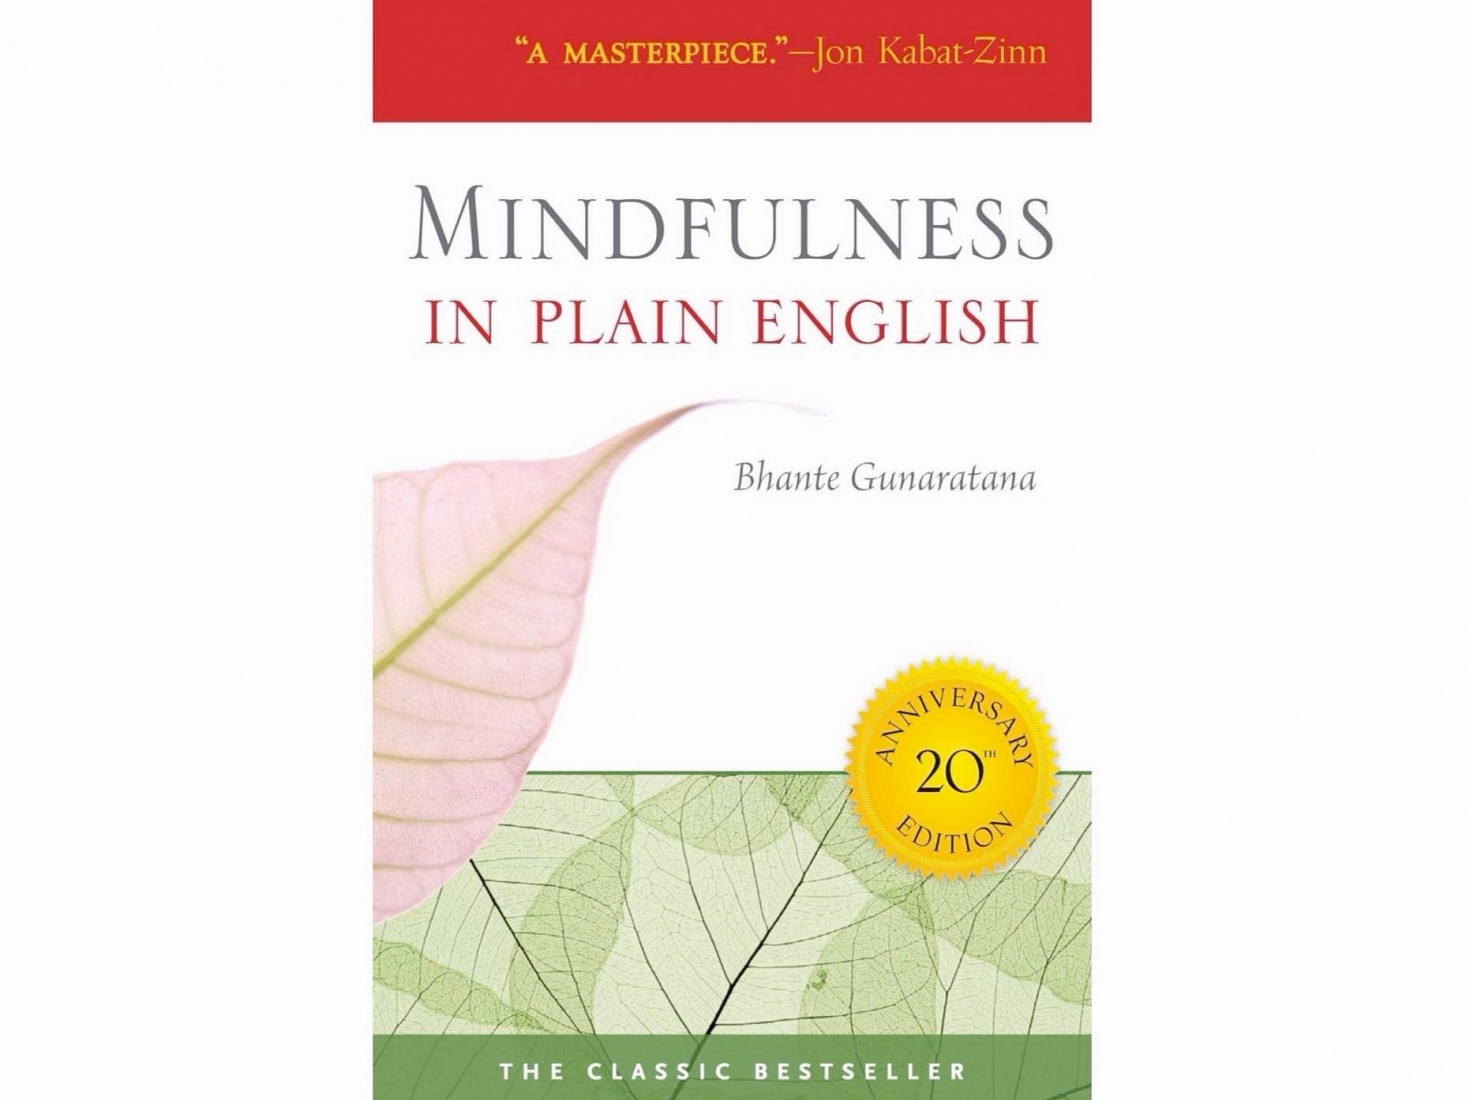 Cover of Mindfulness in Plain English by Bhante Gunaratana, outlines basic meditation mechanics and teaches some background of meditation's Buddhist roots.